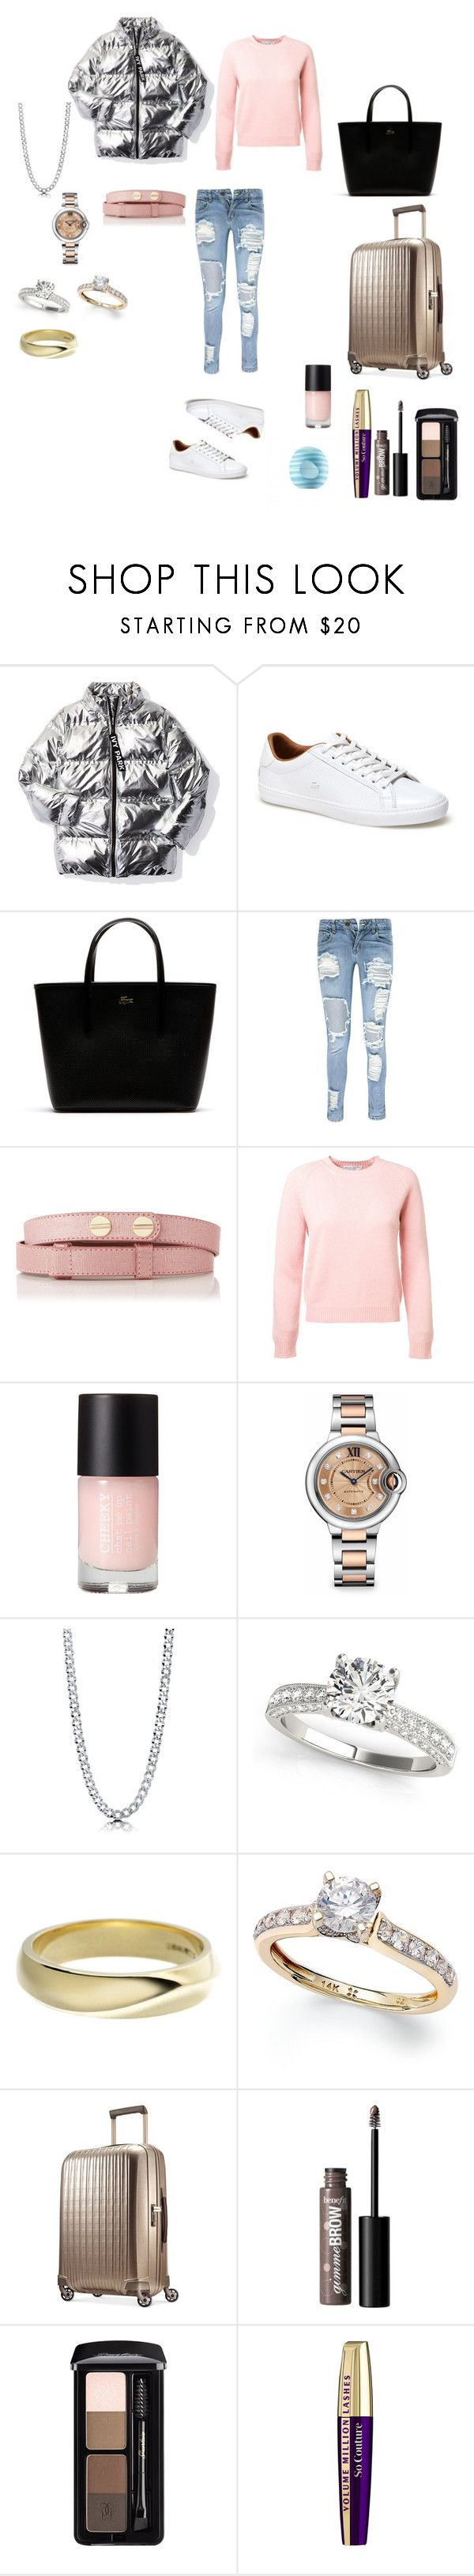 """Untitled #1143"" by loreta-798 ❤ liked on Polyvore featuring Ivy Park, Lacoste, Boohoo, L.K.Bennett, Cartier, BERRICLE, Shaun Leane, Hartmann, Guerlain and L'Oréal Paris"